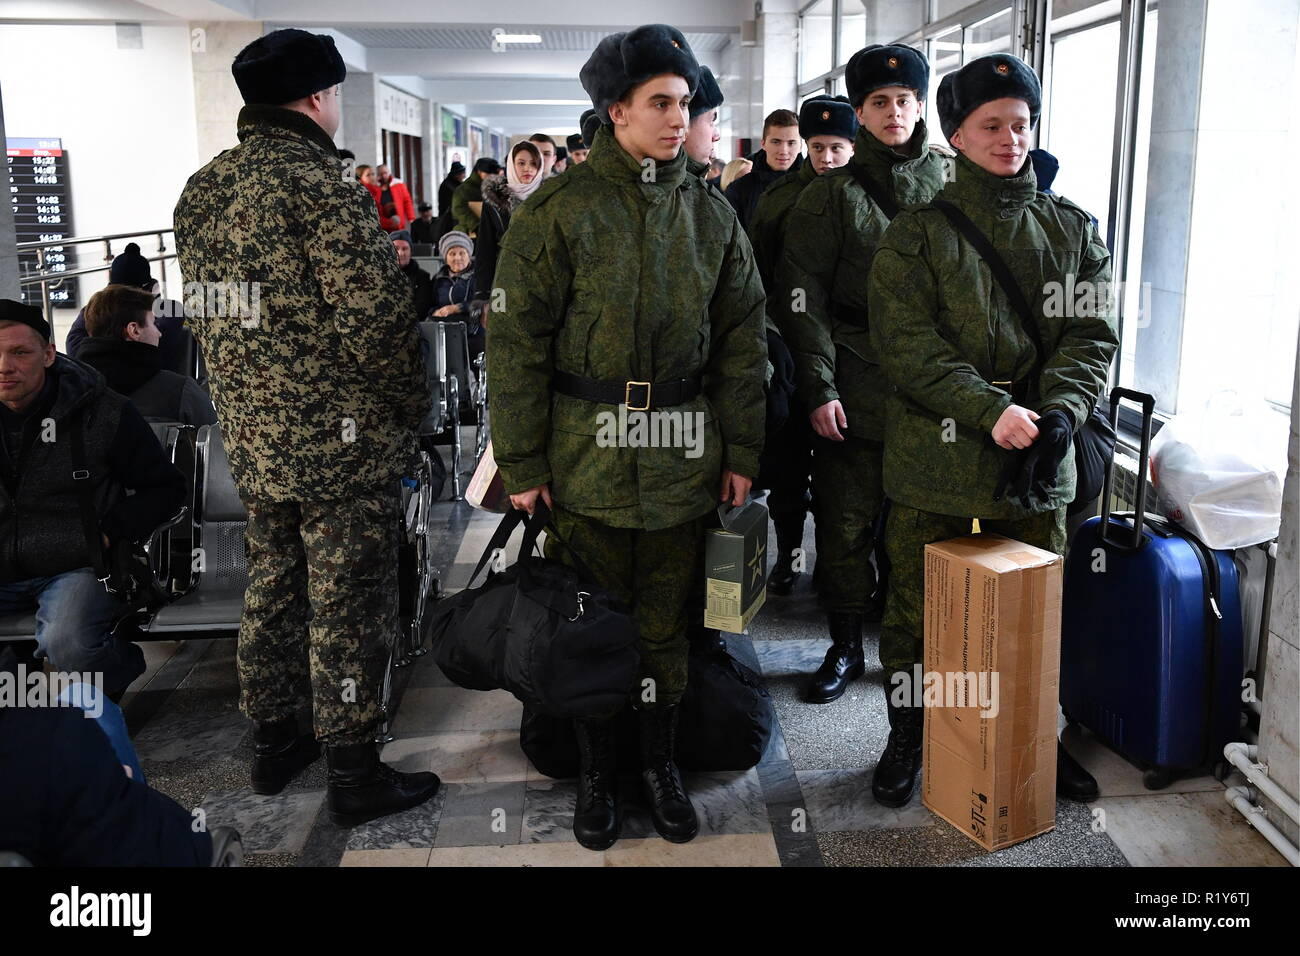 Yekaterinburg, Russia. 15th Nov, 2018. YEKATERINBURG, RUSSIA - NOVEMBER 15, 2018: Russian Army conscripts called up for service in the Kremlin Regiment during a seeing-off ceremony at Yekaterinburg-Passazhirsky Railway Station. Donat Sorokin/TASS Credit: ITAR-TASS News Agency/Alamy Live News - Stock Image